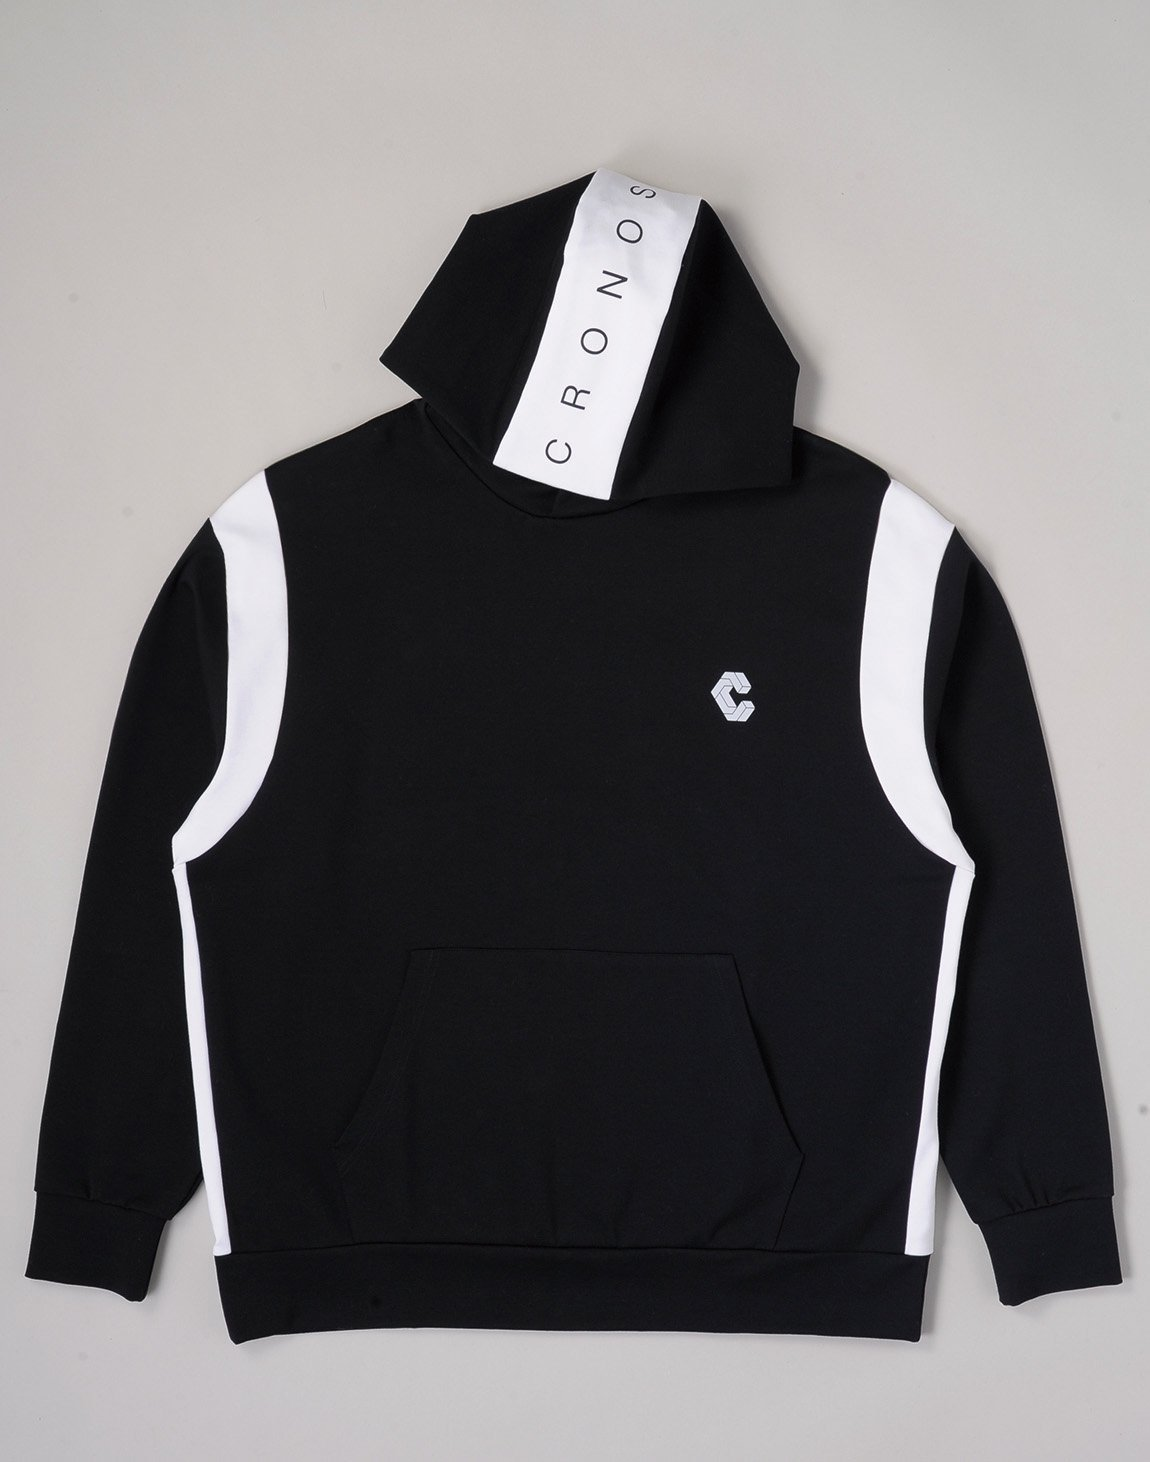 <img class='new_mark_img1' src='https://img.shop-pro.jp/img/new/icons1.gif' style='border:none;display:inline;margin:0px;padding:0px;width:auto;' />CRONOS HEAD LOGO HOODIE【BLACK×WHITE】